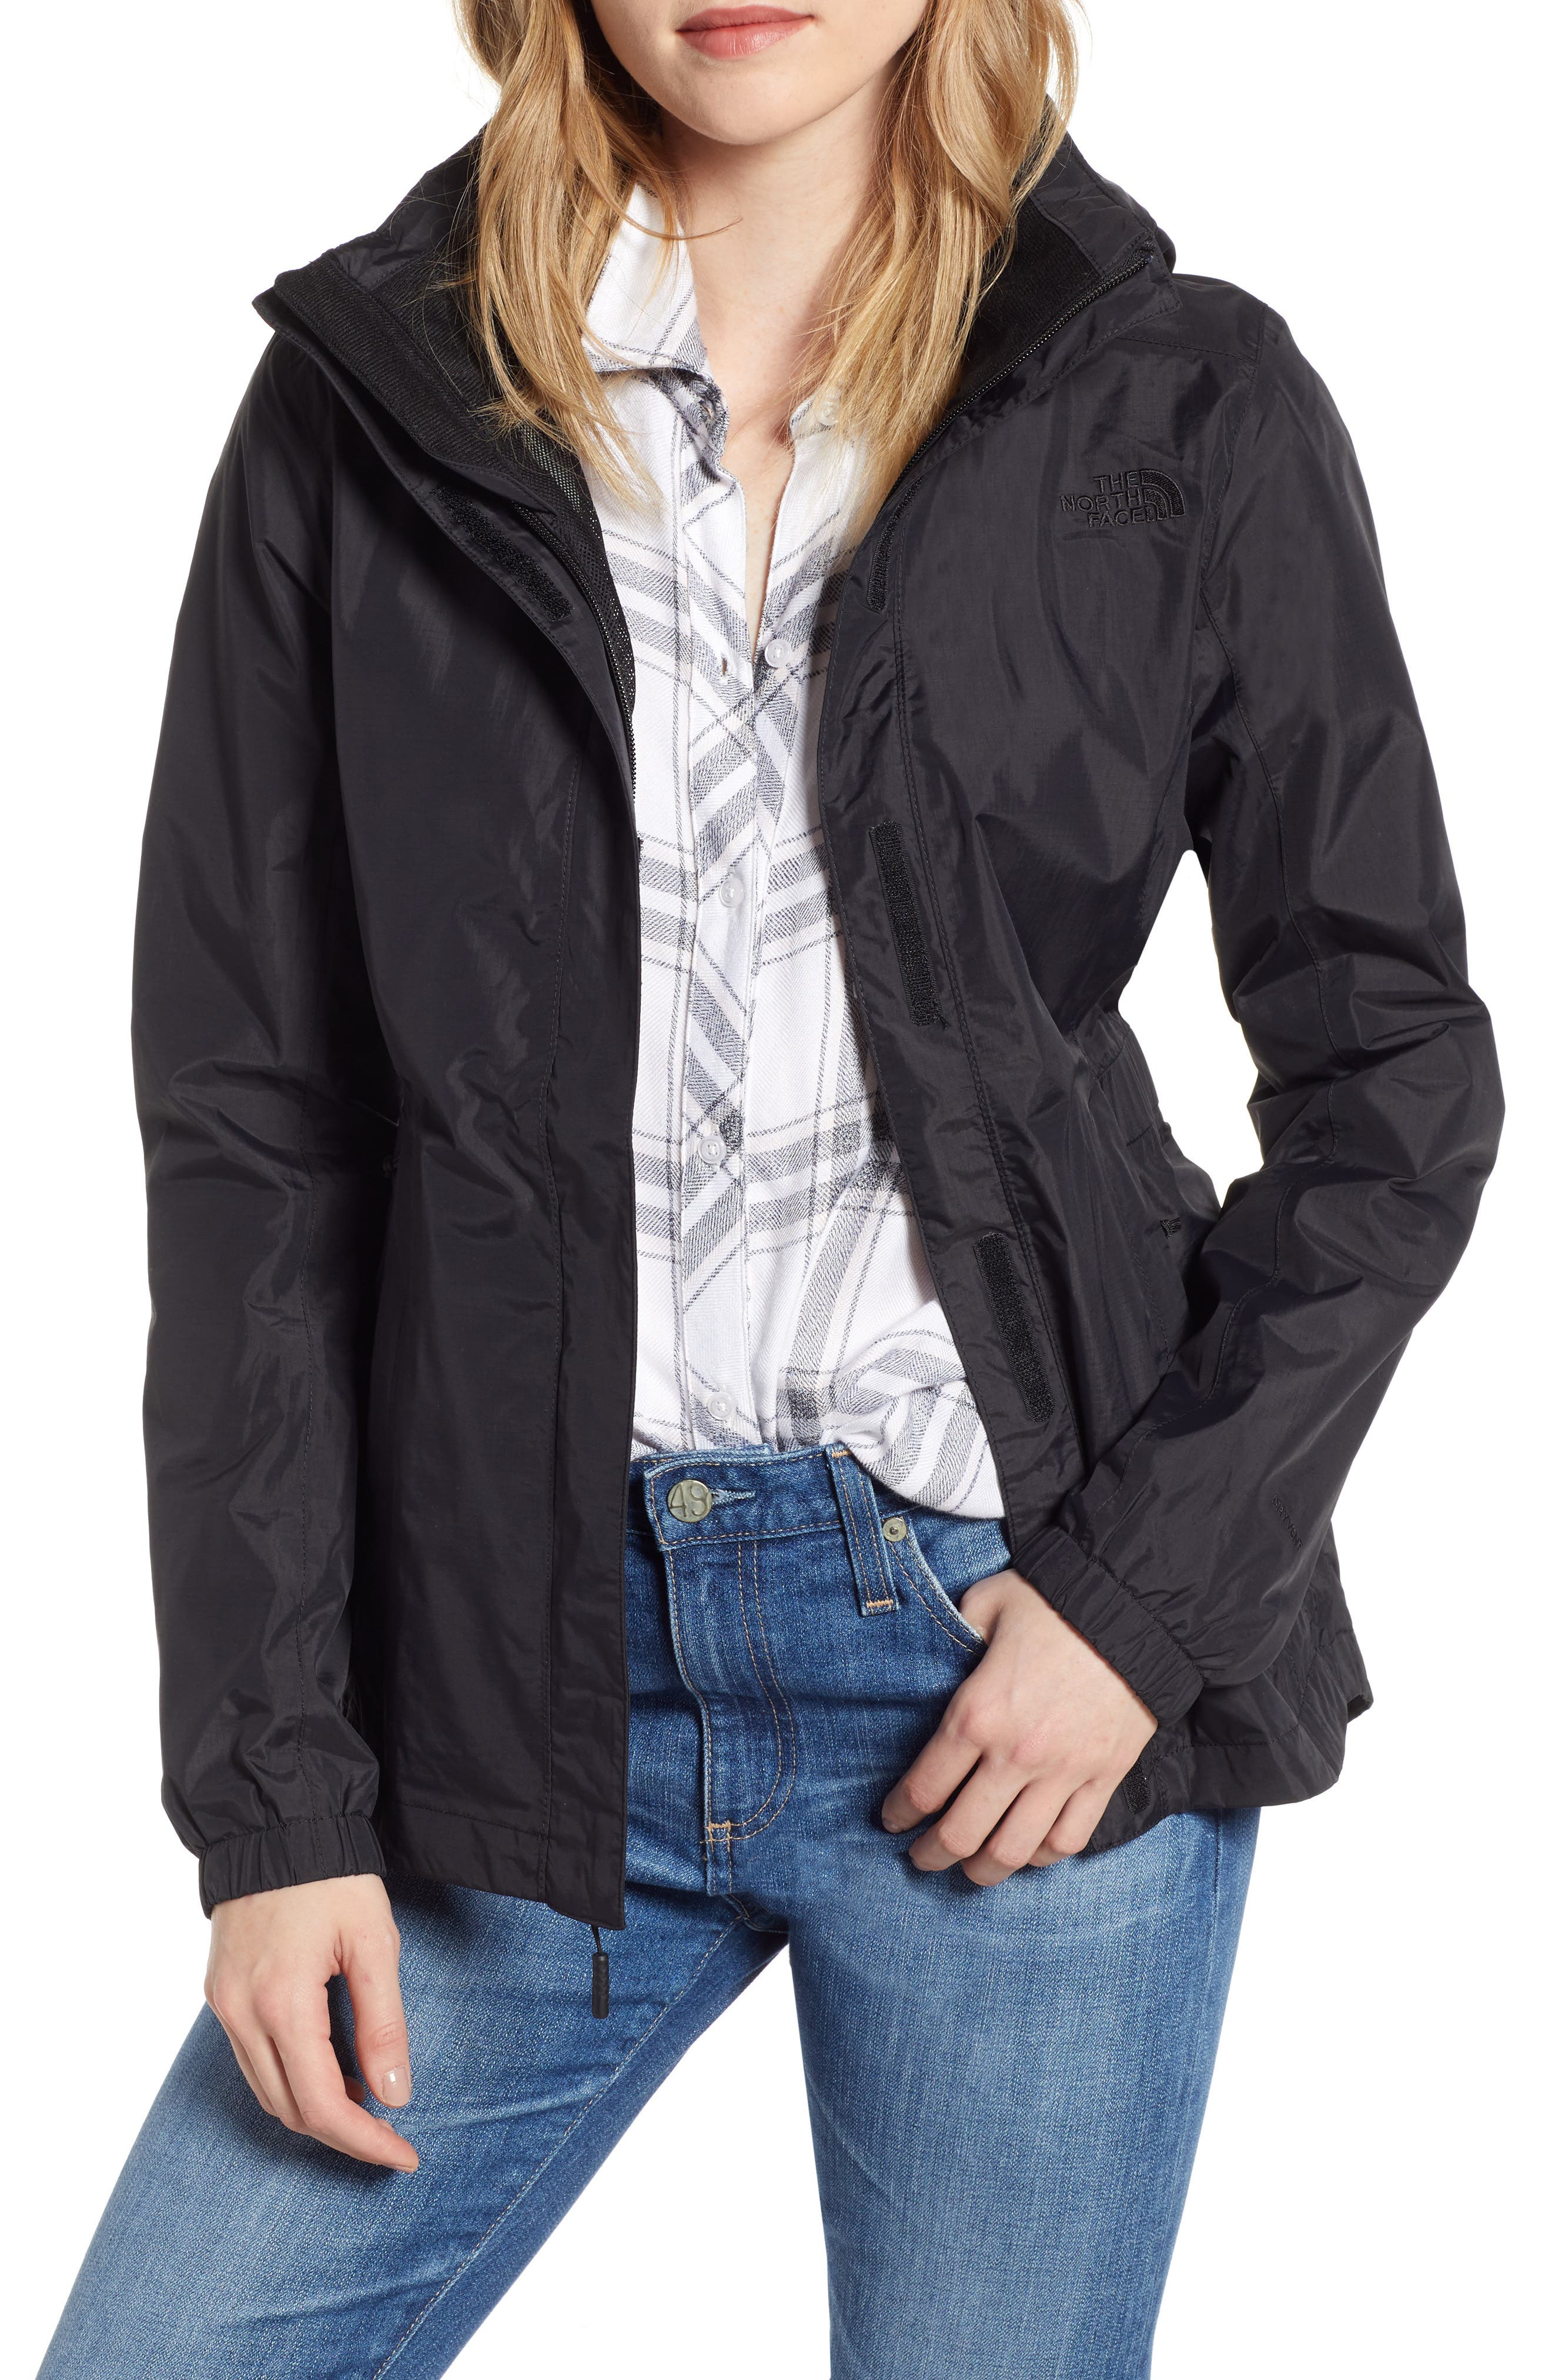 THE NORTH FACE Resolve II Waterproof/Windproof Parka, Main, color, TNF BLACK